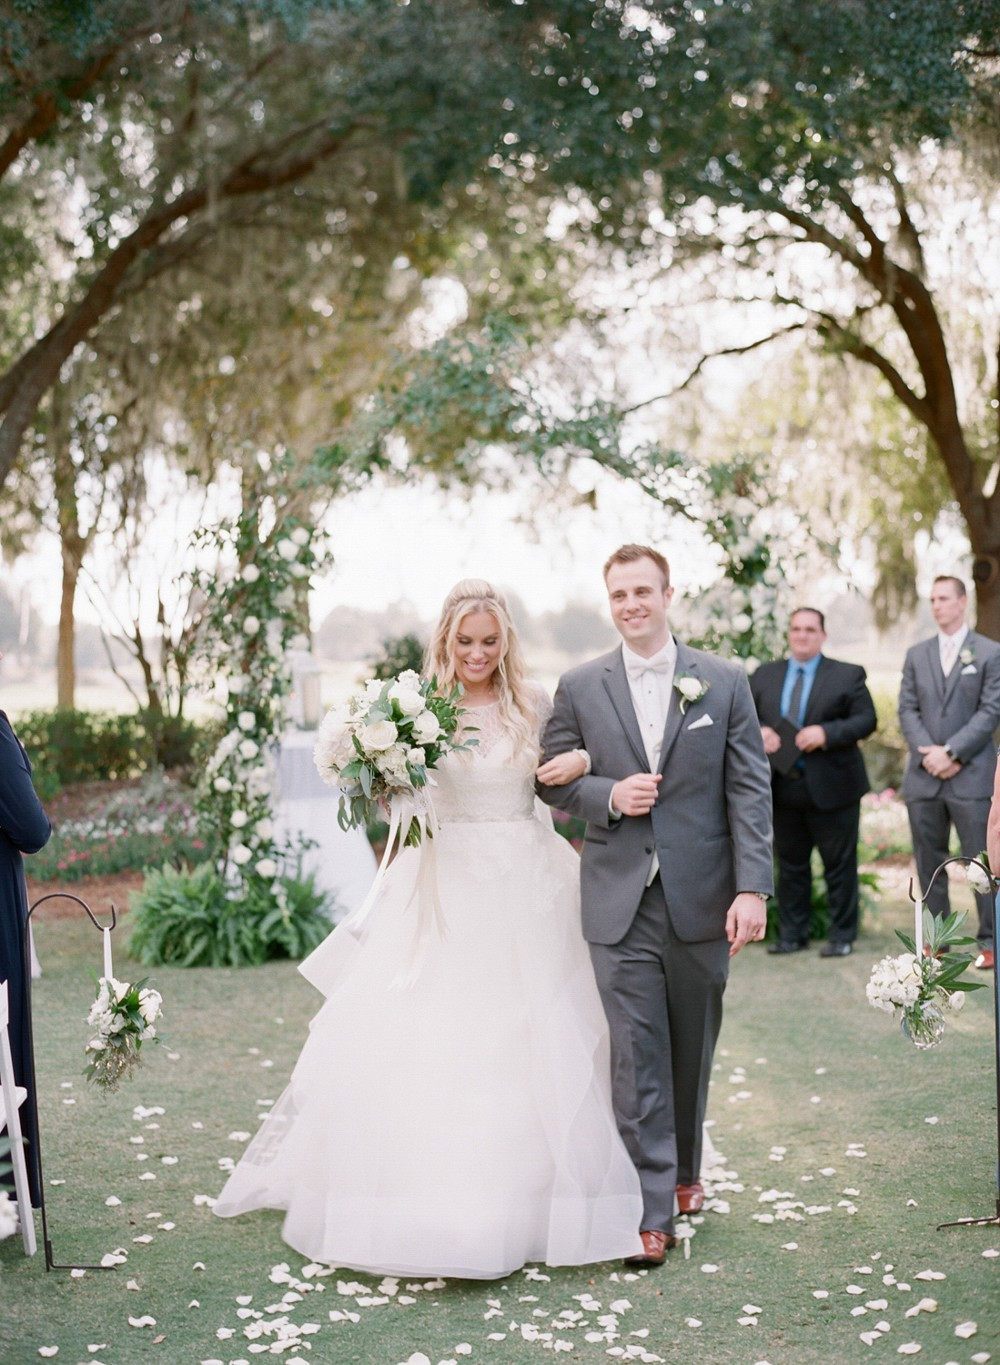 Hannah and Chris' Luxe Garden Wedding